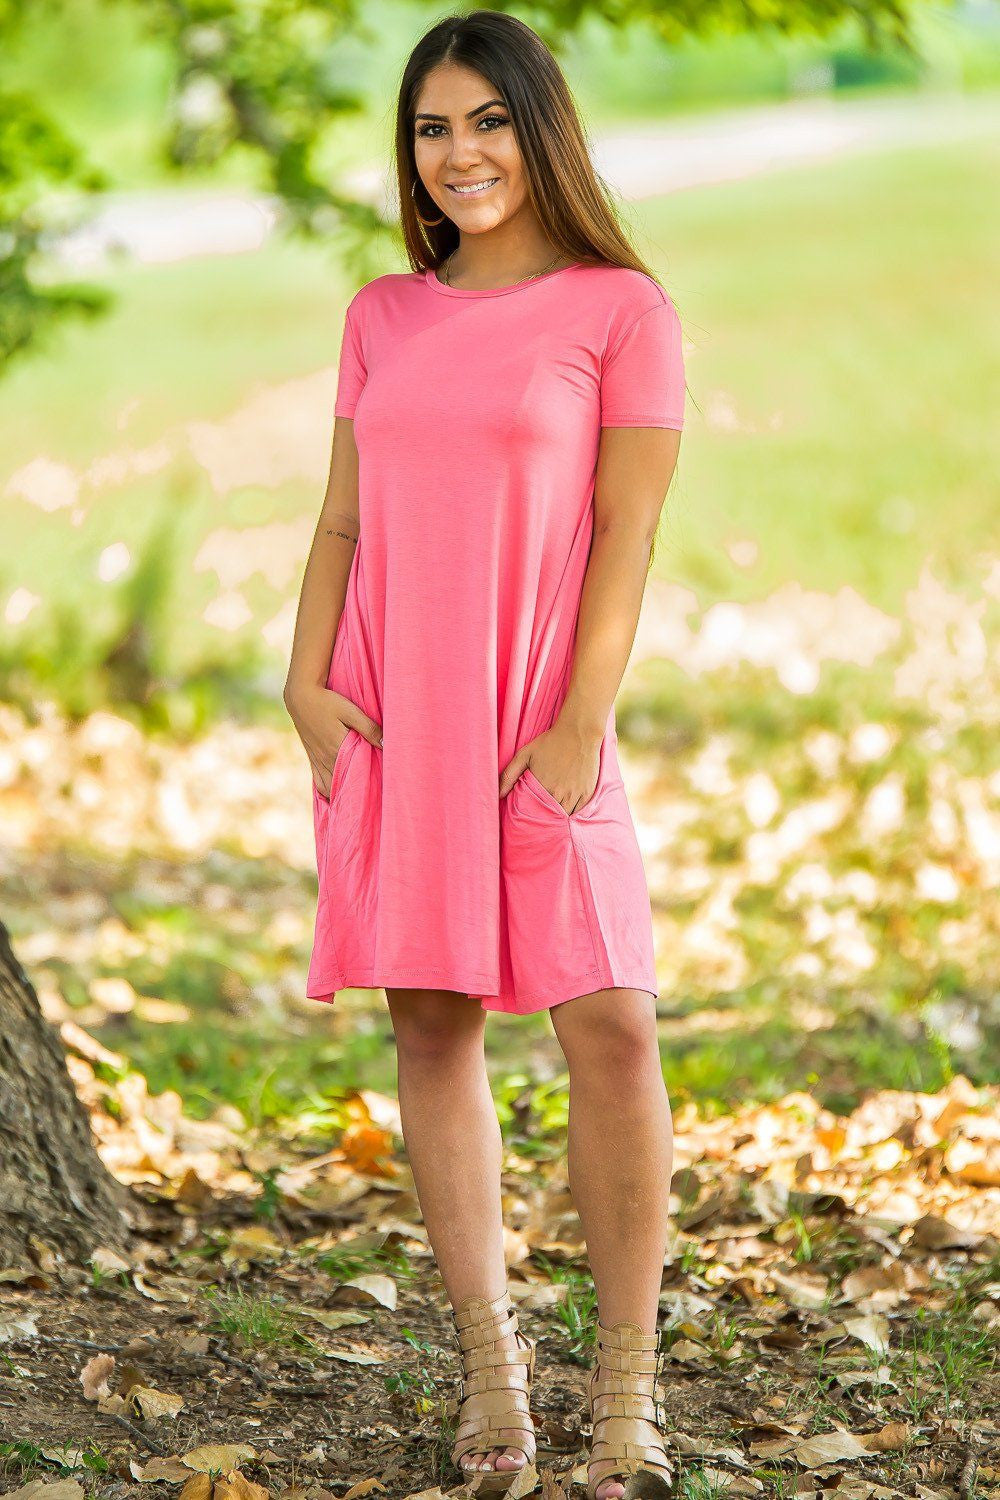 Piko Short Sleeve Swing Dress - Coral - Piko Clothing - 1